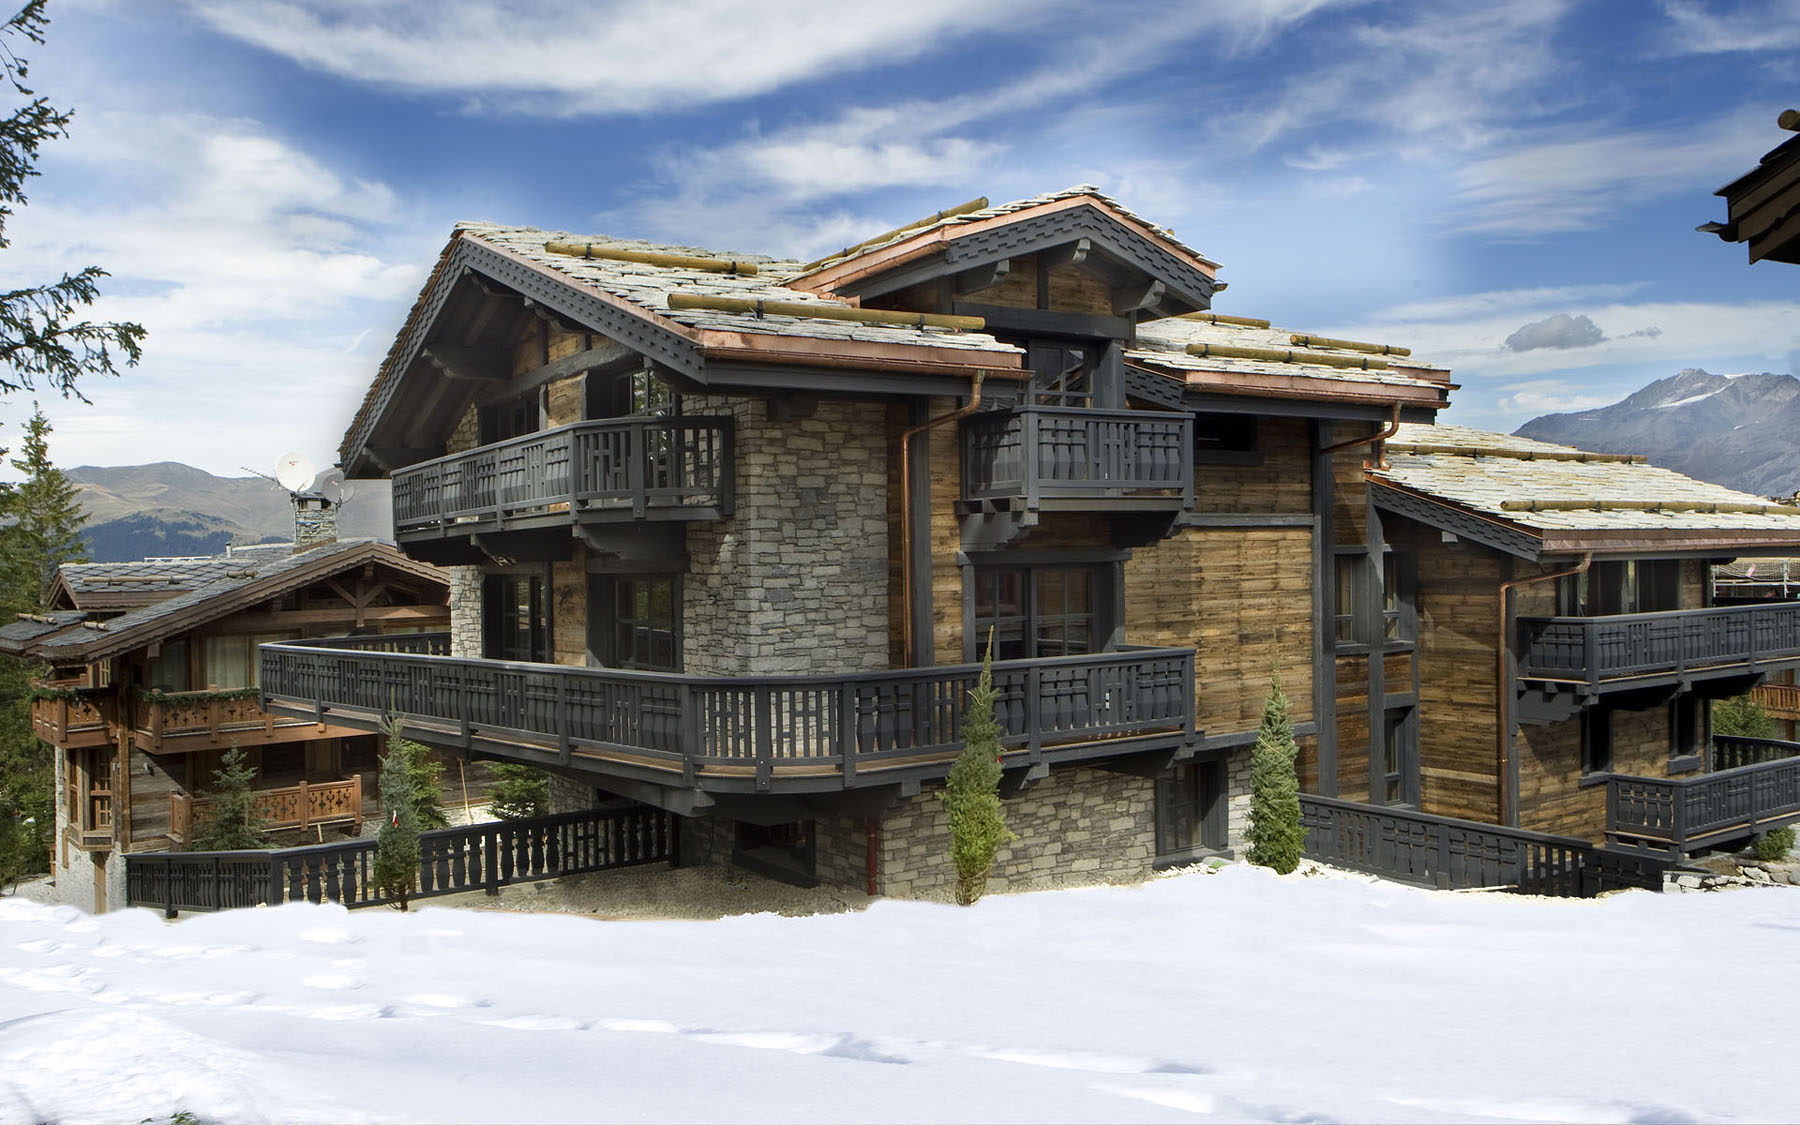 Chalet Edelweiss Courchevel France